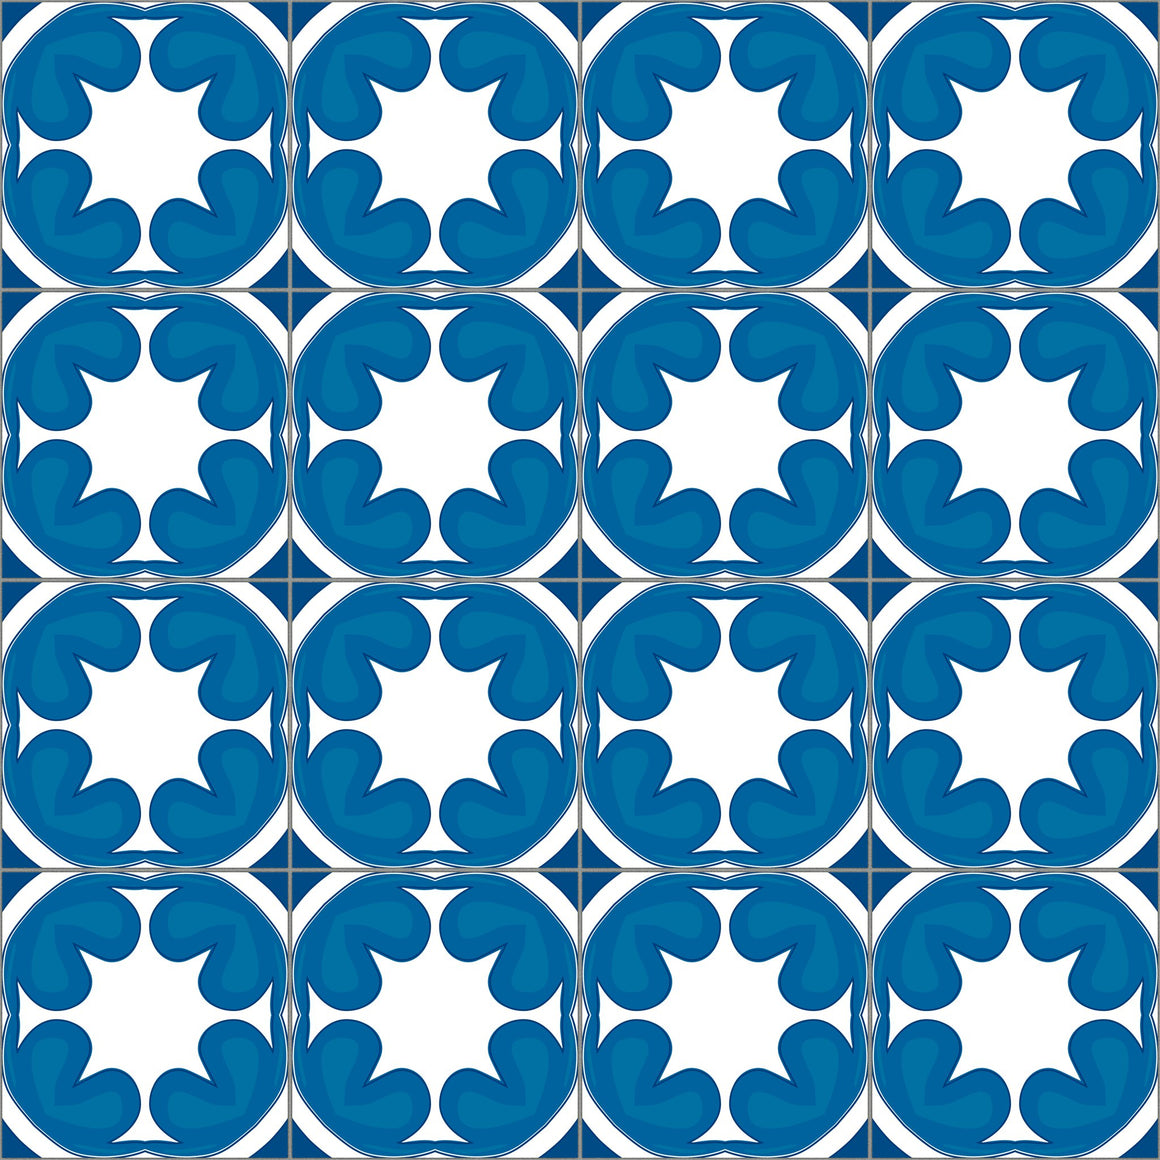 Tile stickers - KP101